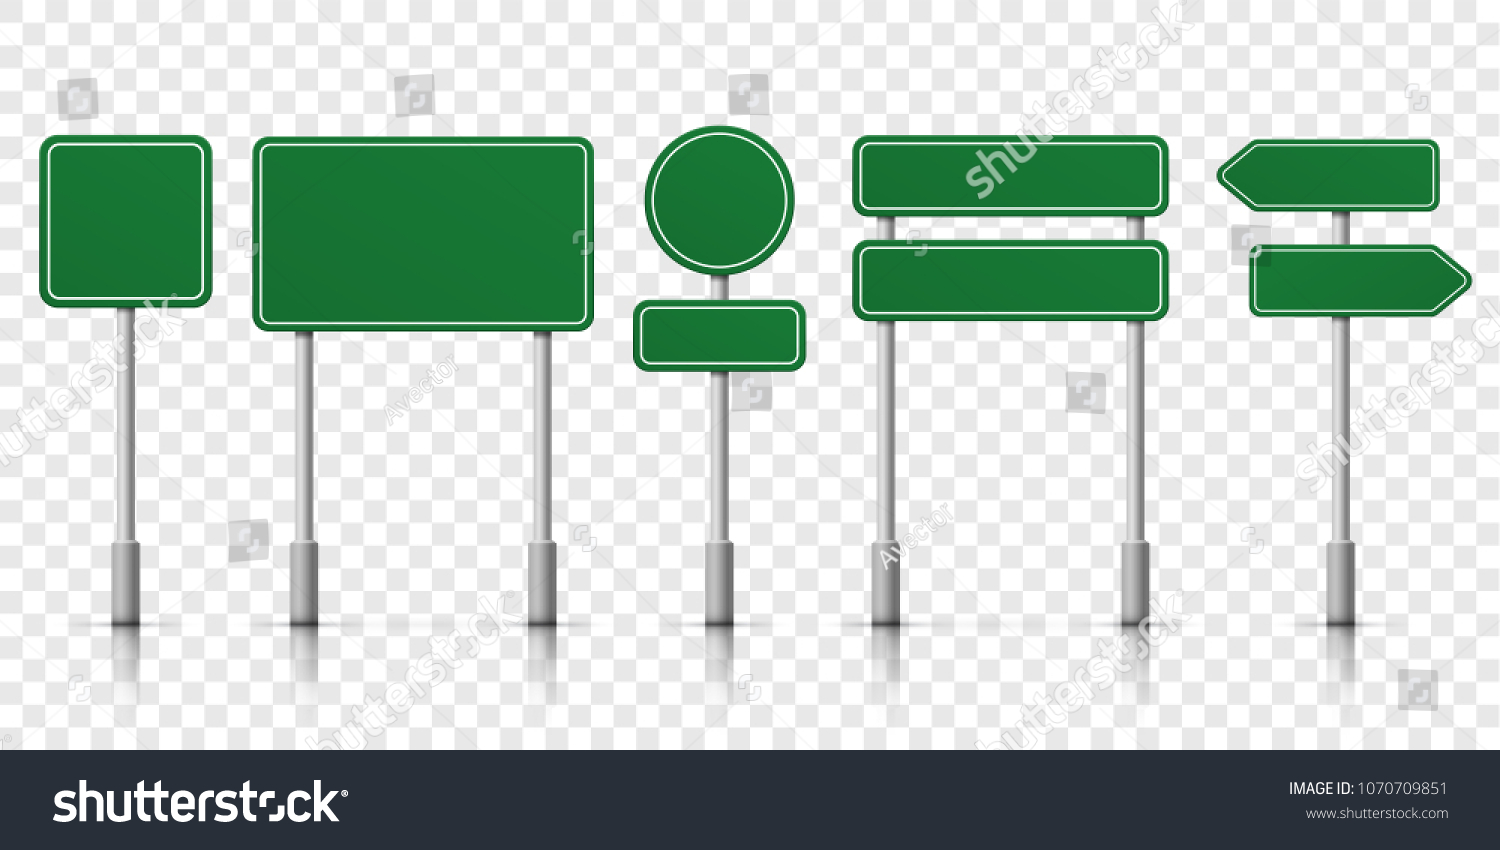 road signs blank icons vector green のベクター画像素材